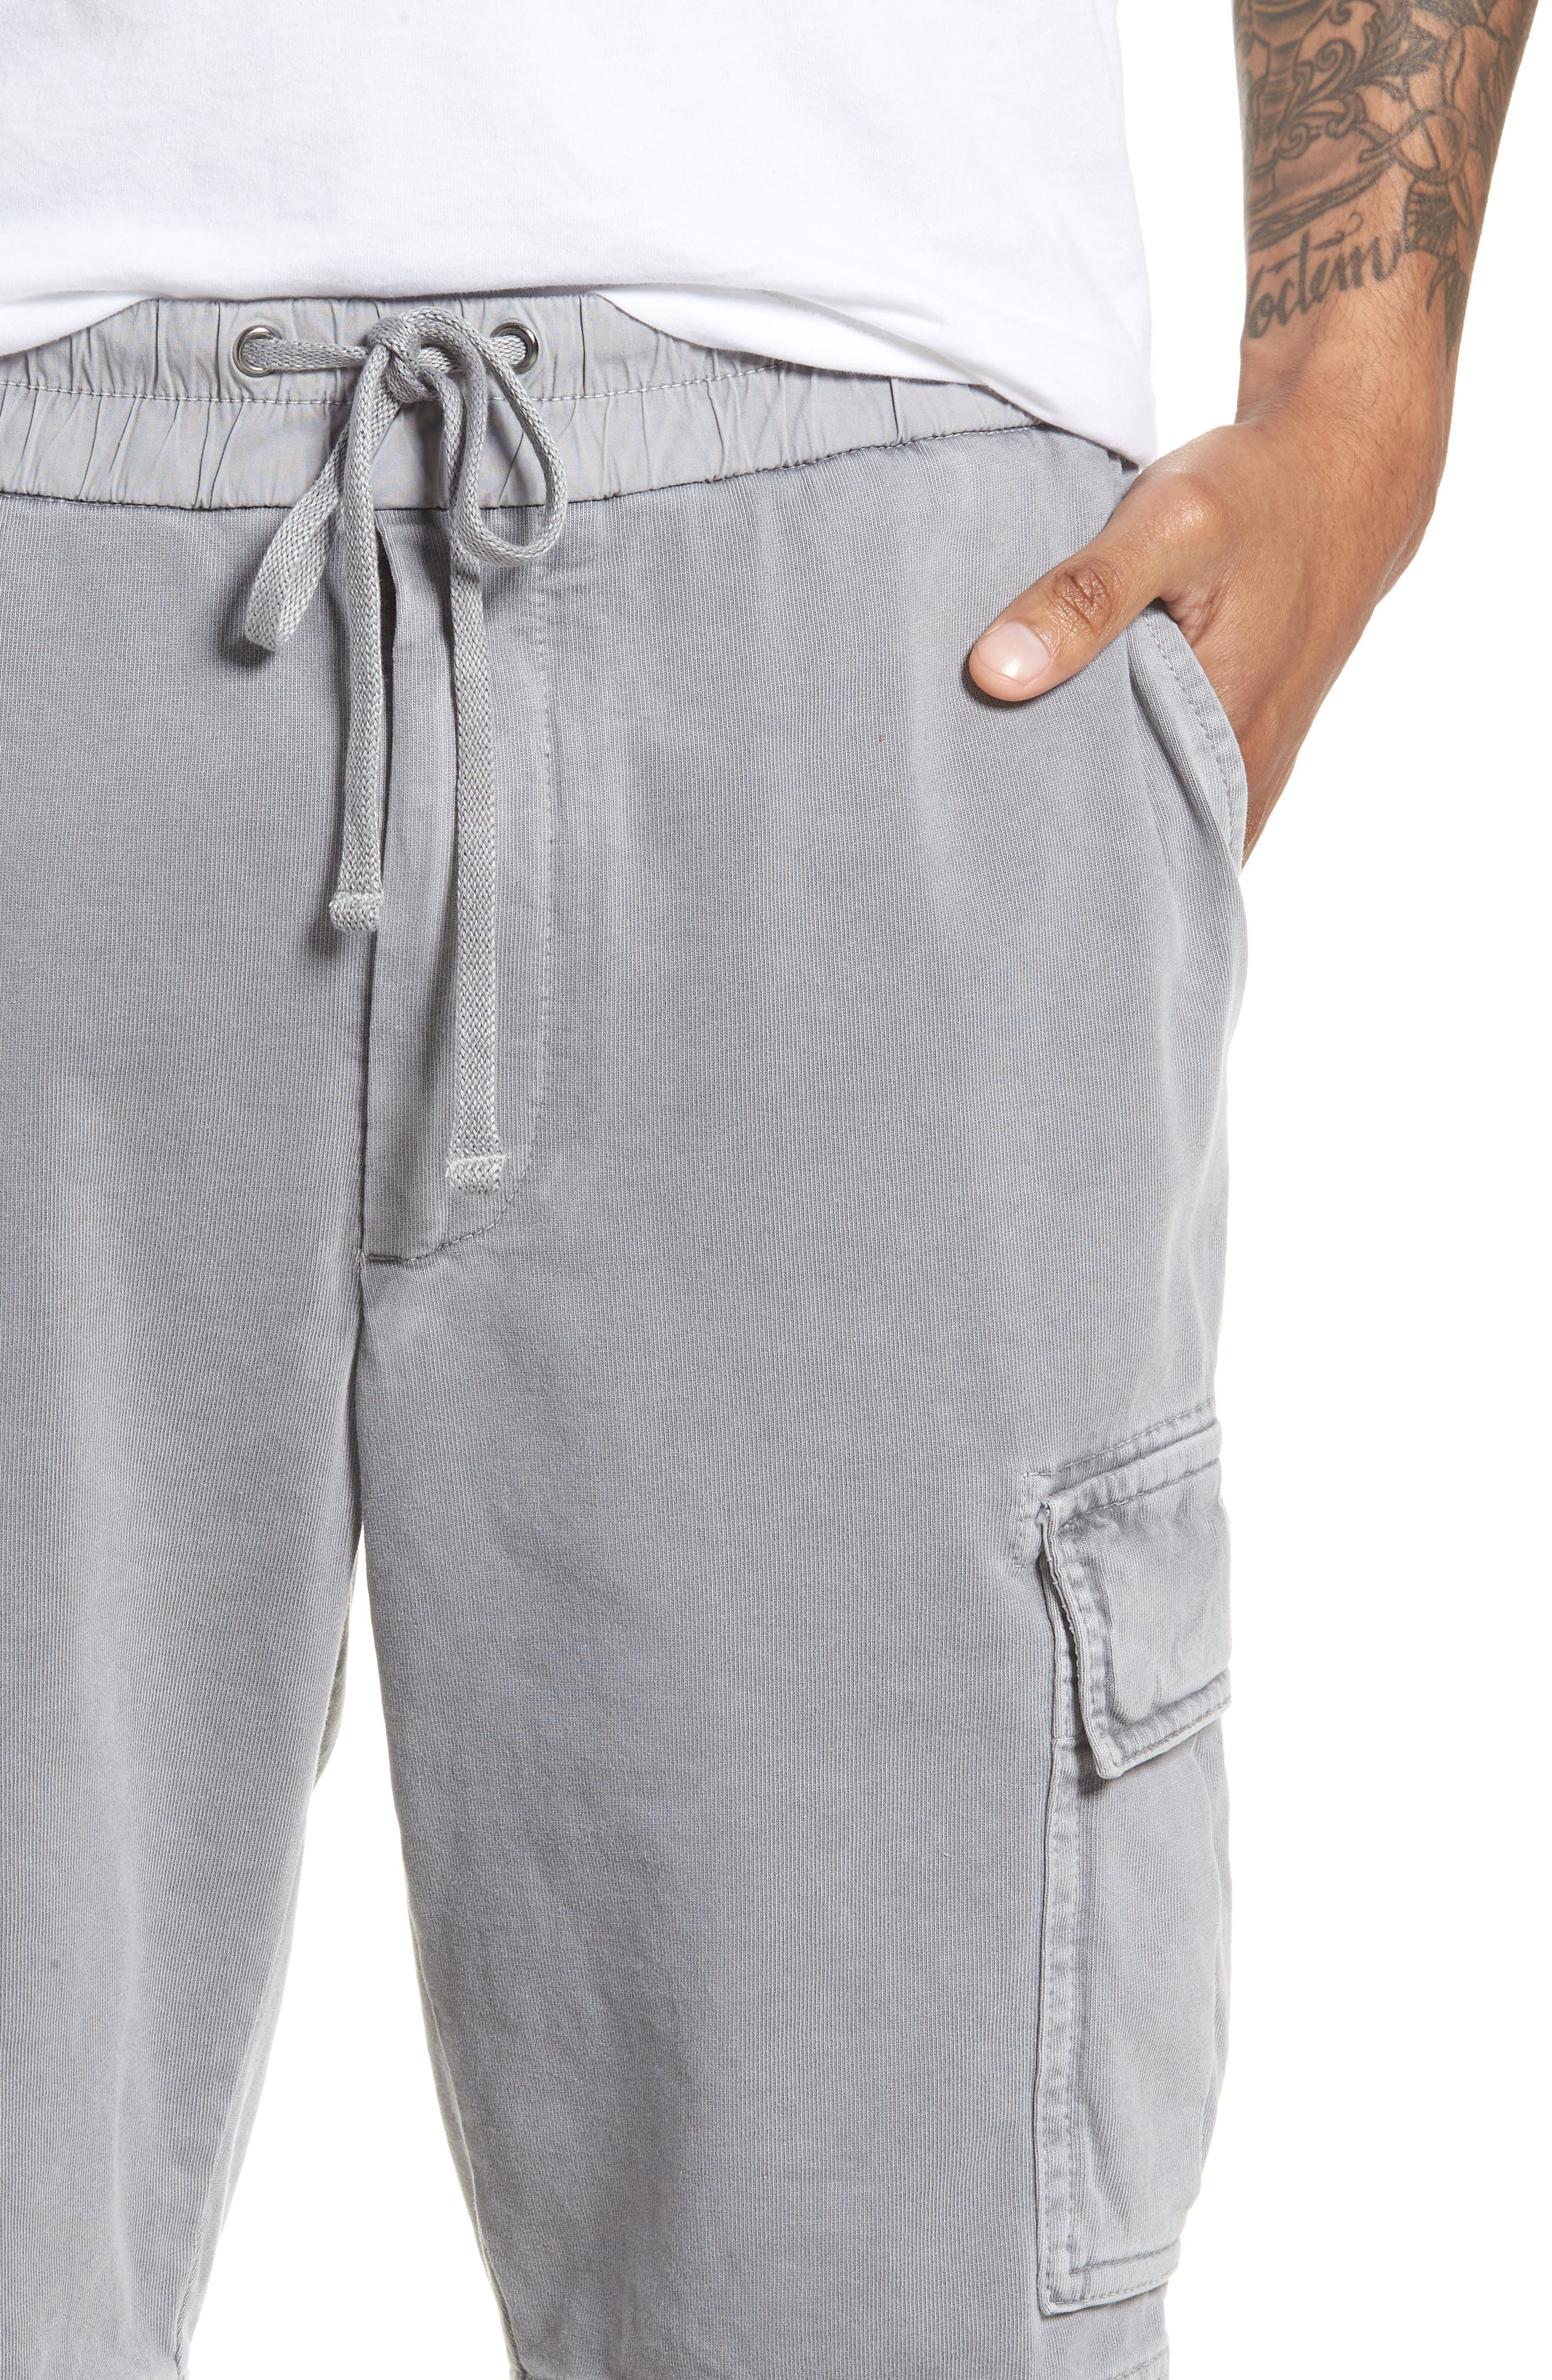 Heavy Jersey Cargo Shorts,                             Alternate thumbnail 4, color,                             BREEZE PIGMENT